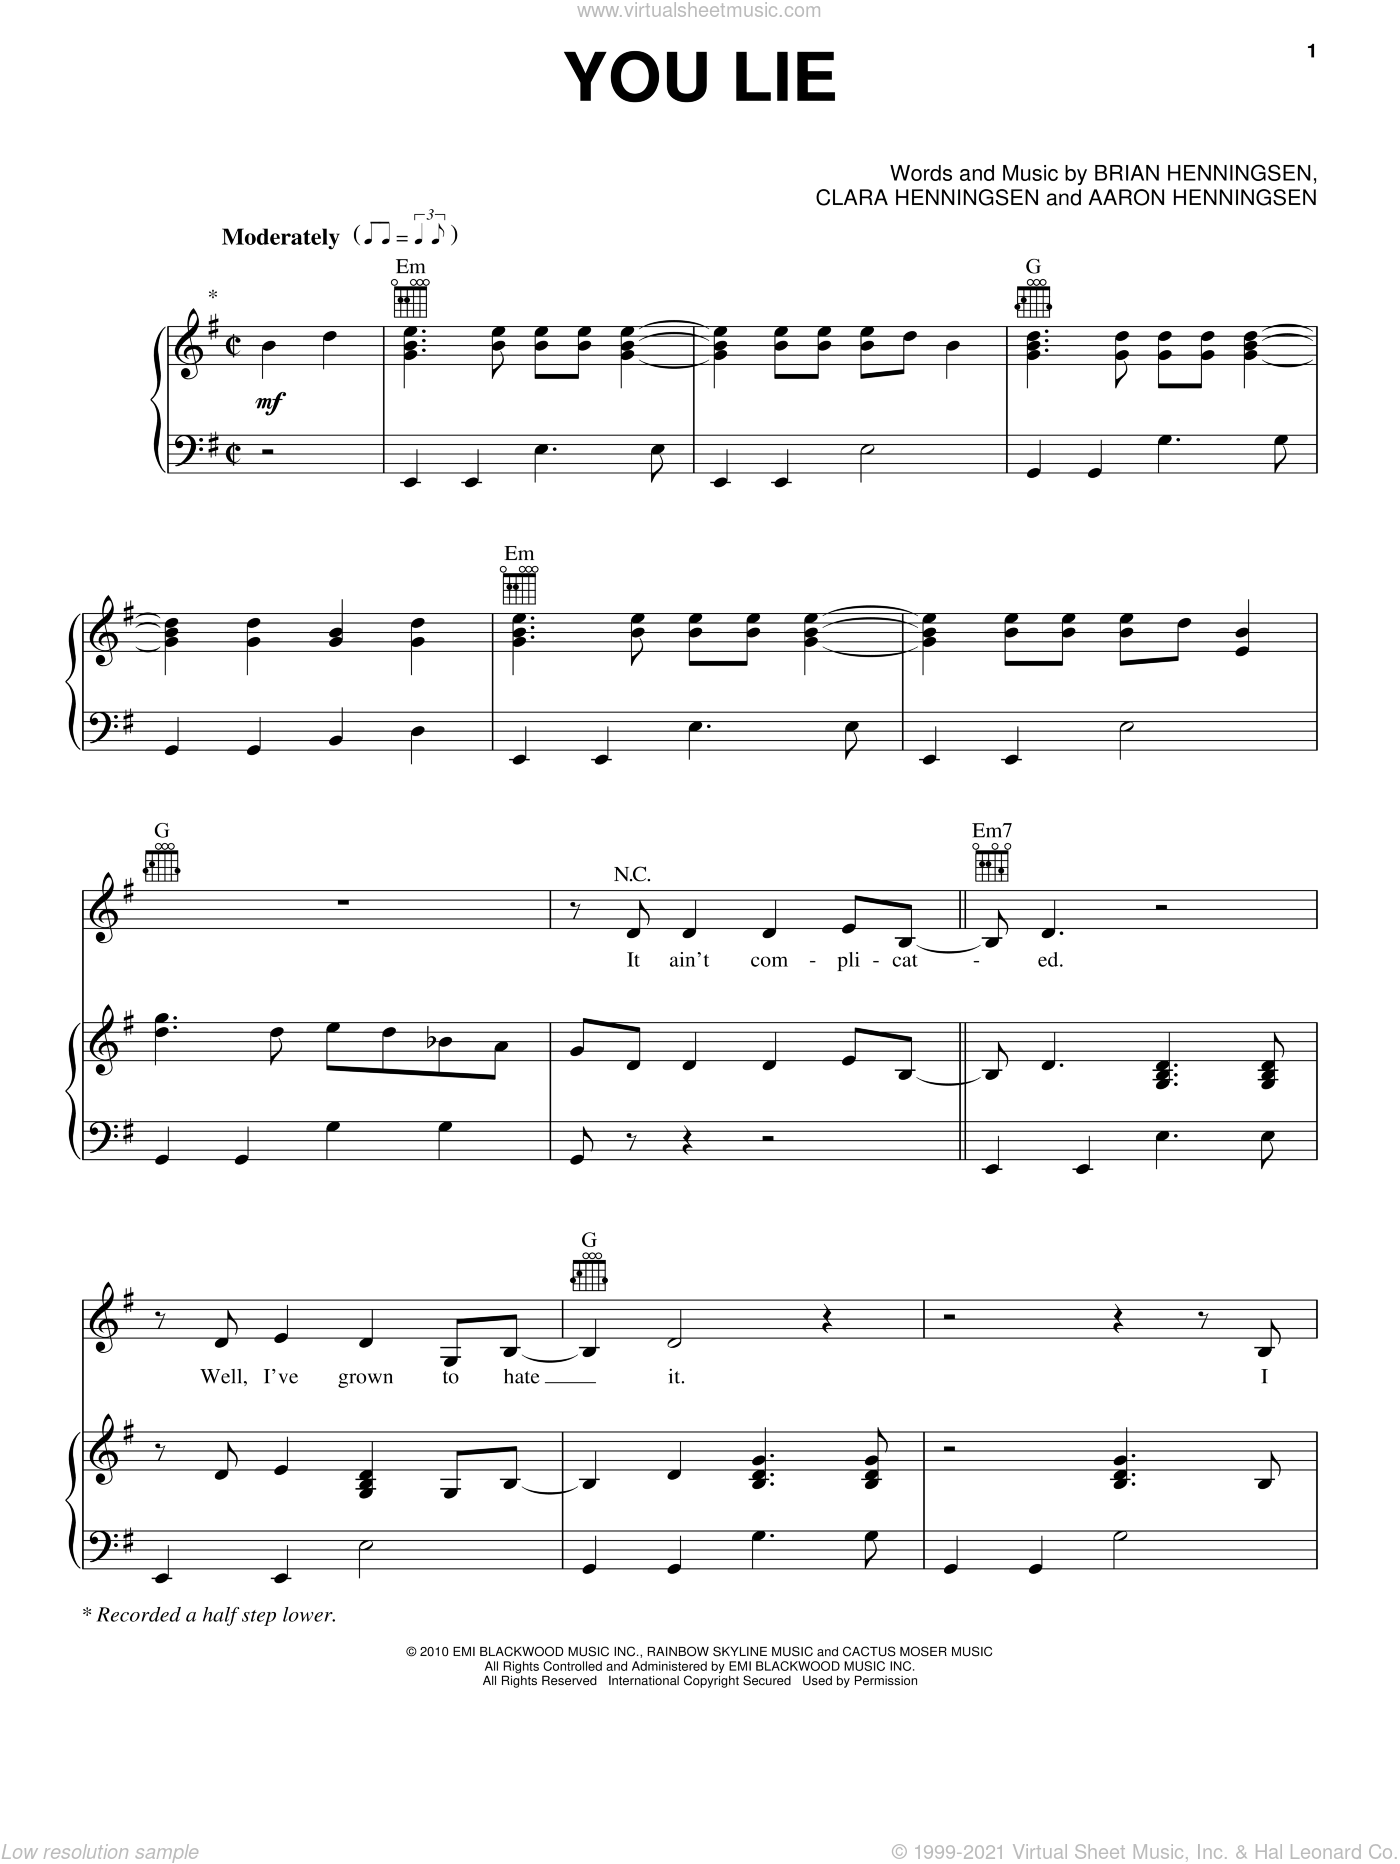 You Lie sheet music for voice, piano or guitar by The Band Perry, Aaron Henningsen, Brian Henningsen and Clara Henningsen, intermediate skill level